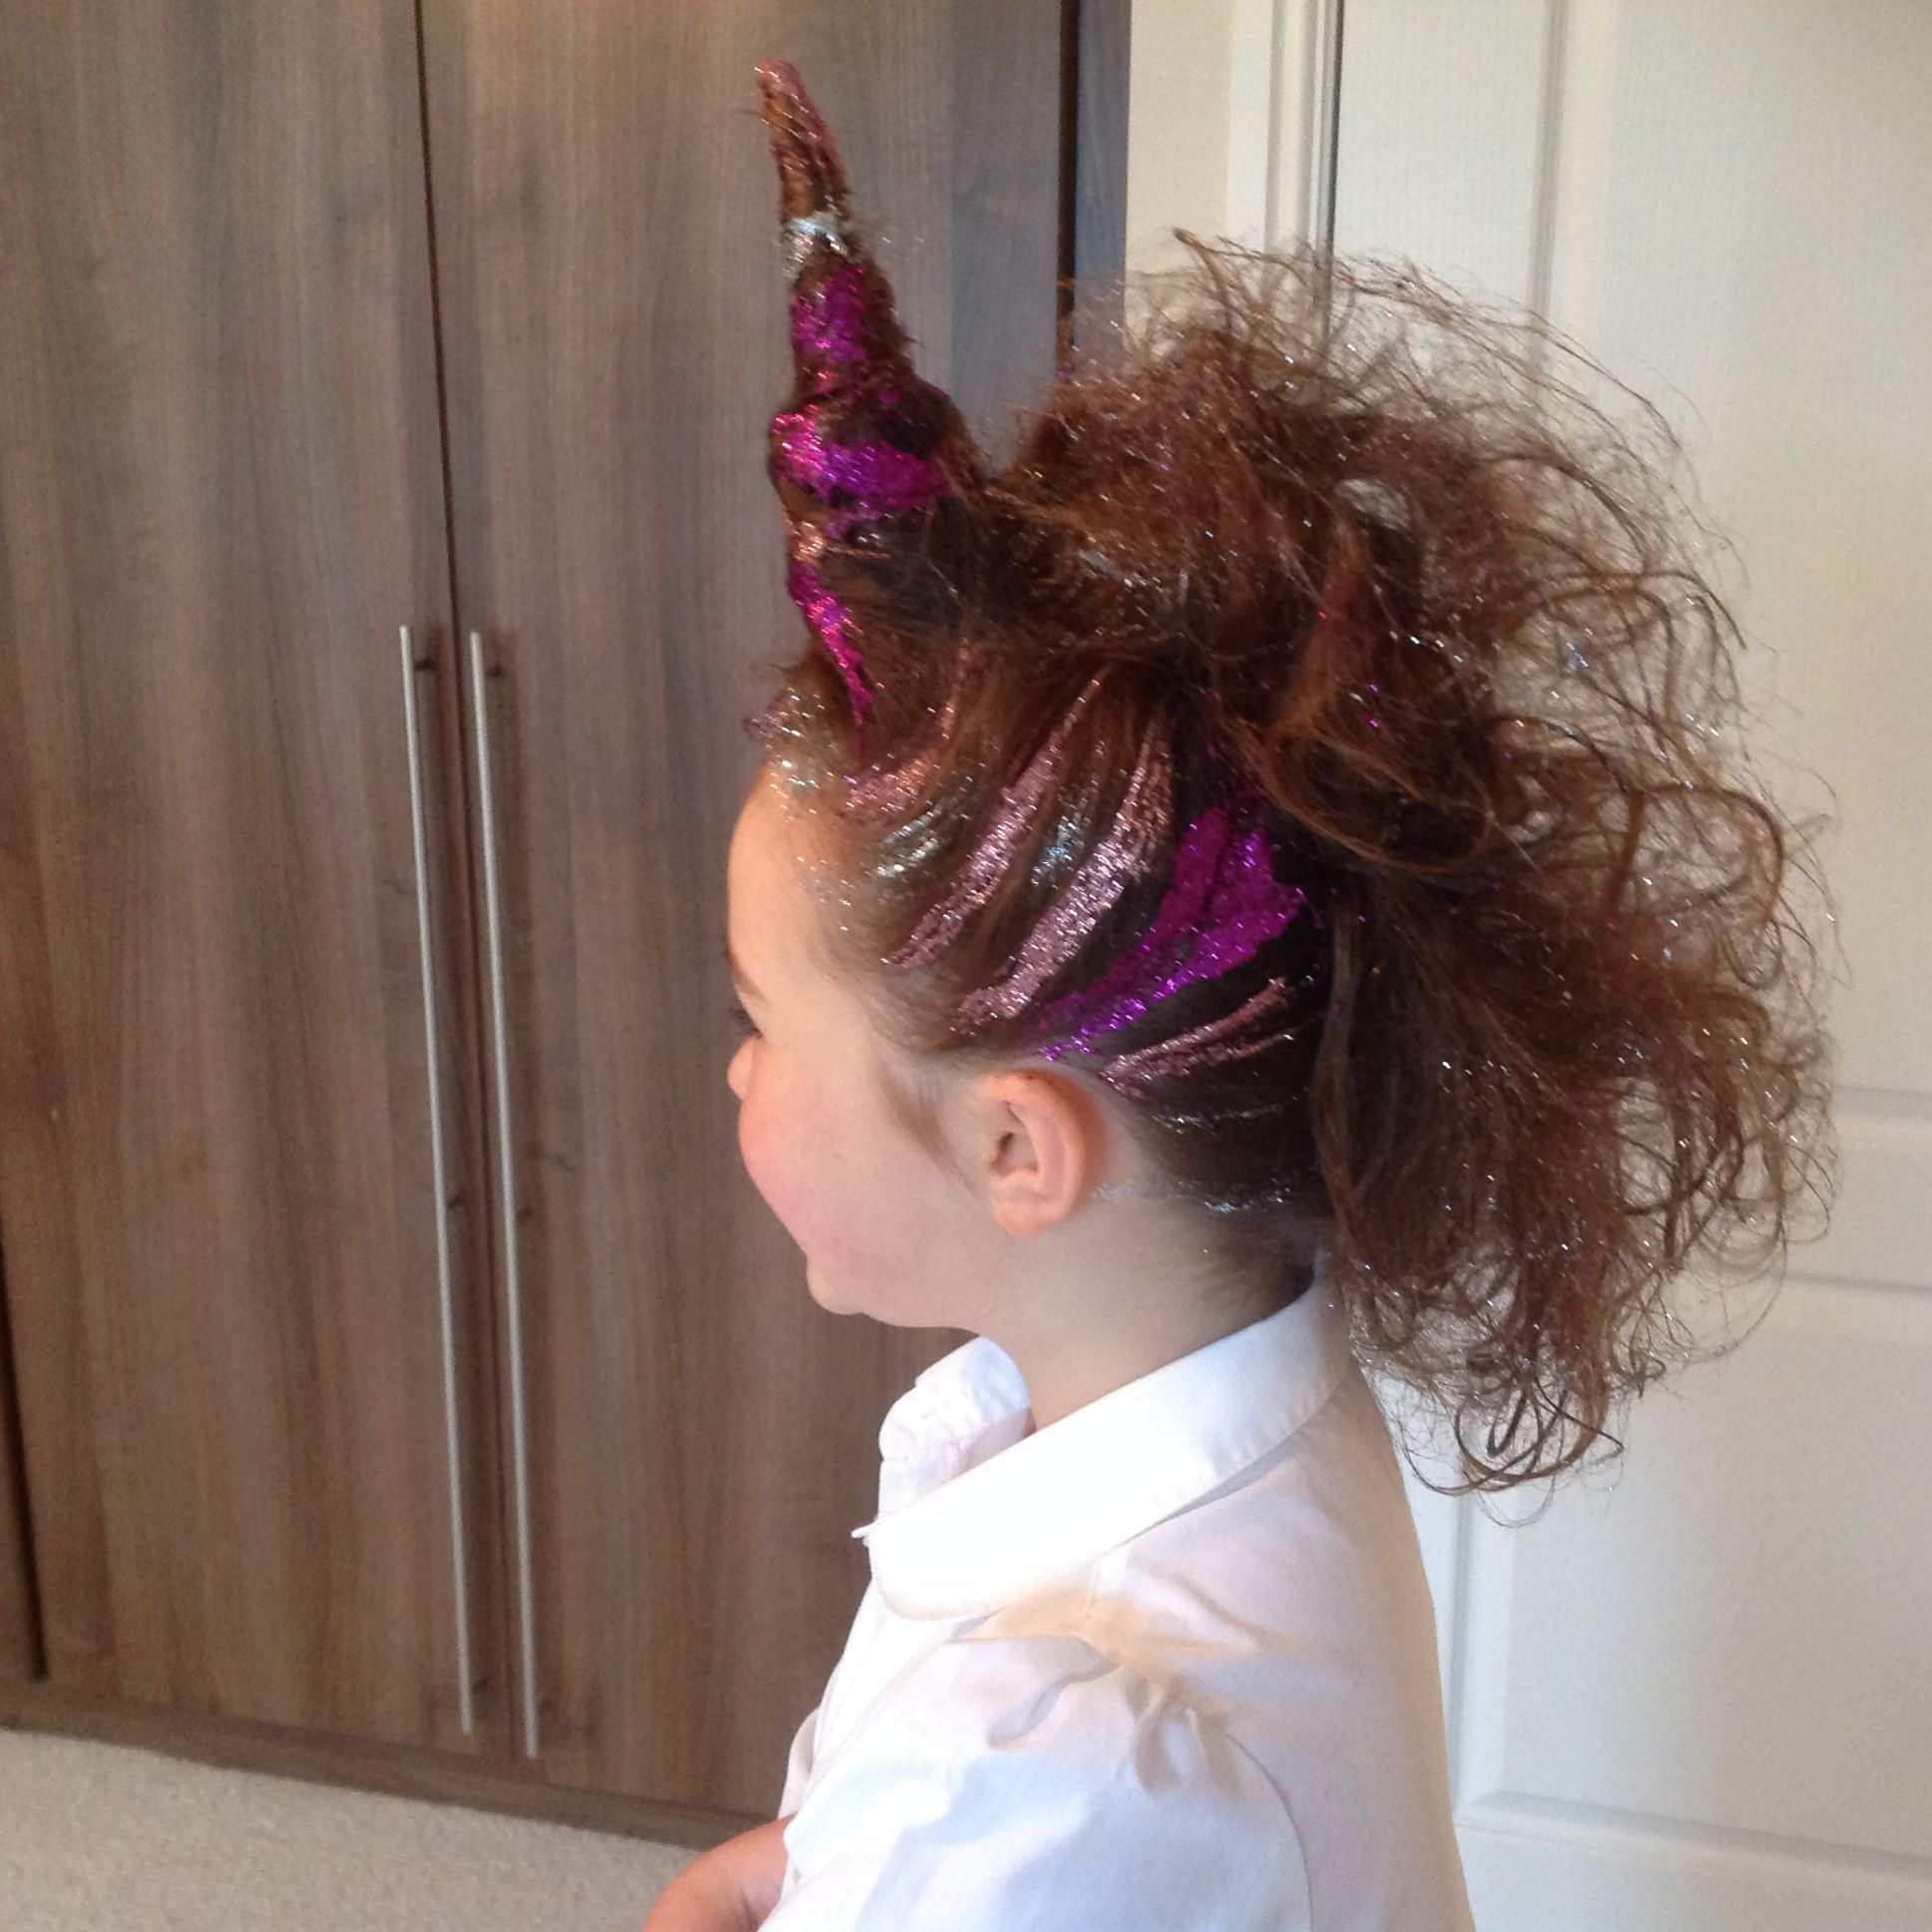 Glittery Unicorn For Crazy Hair Day At School Crazy Hair Crazy Hair Day At School Crazy Hair Days